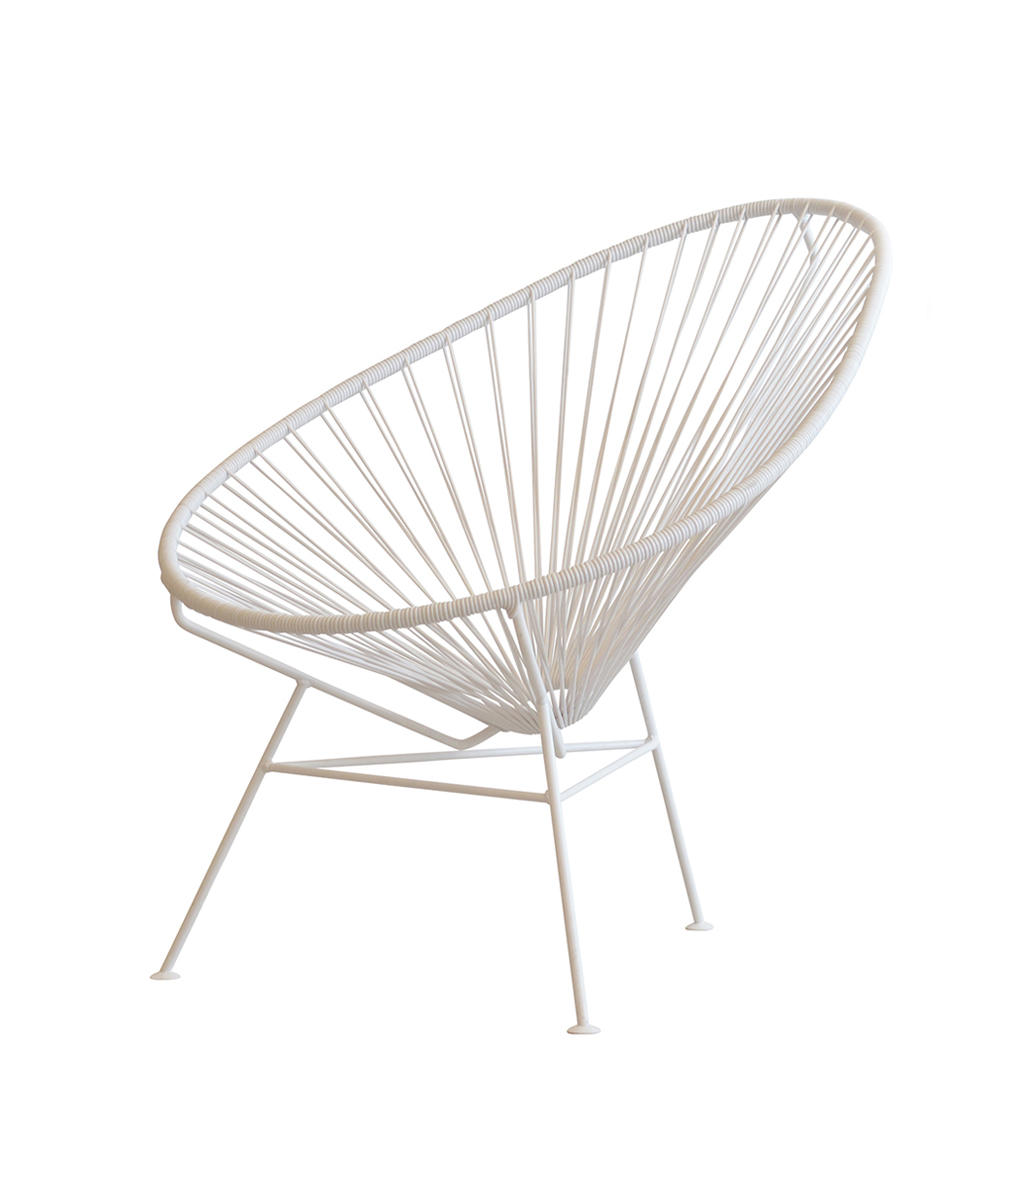 Acapulco Chair - <p>The Original Acapulco Chair® is named after the legendary Pacific resort Acapulco in Mexico. In the '50s Acapulco was a refuge of Pacific tranquillity, where cocktails were served to Hollywood's greatest stars on sunny terraces overlooking the Acapulco Bay. Elvis Presley, Elisabeth Taylor and John Wayne were some of many who fell in love with Acapulco at the time. Suitable for outdoor use.</p>  | Matter of Stuff